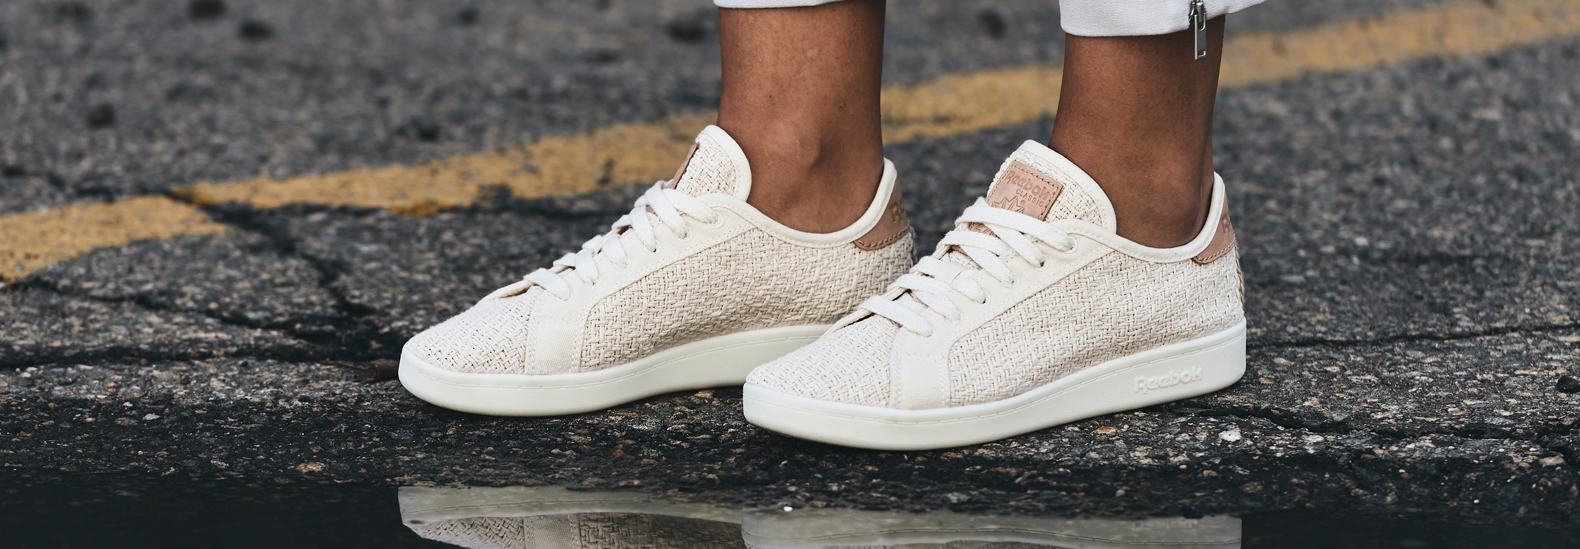 a737e8941cb Reebok develops plant-based sneakers made of cotton and corn